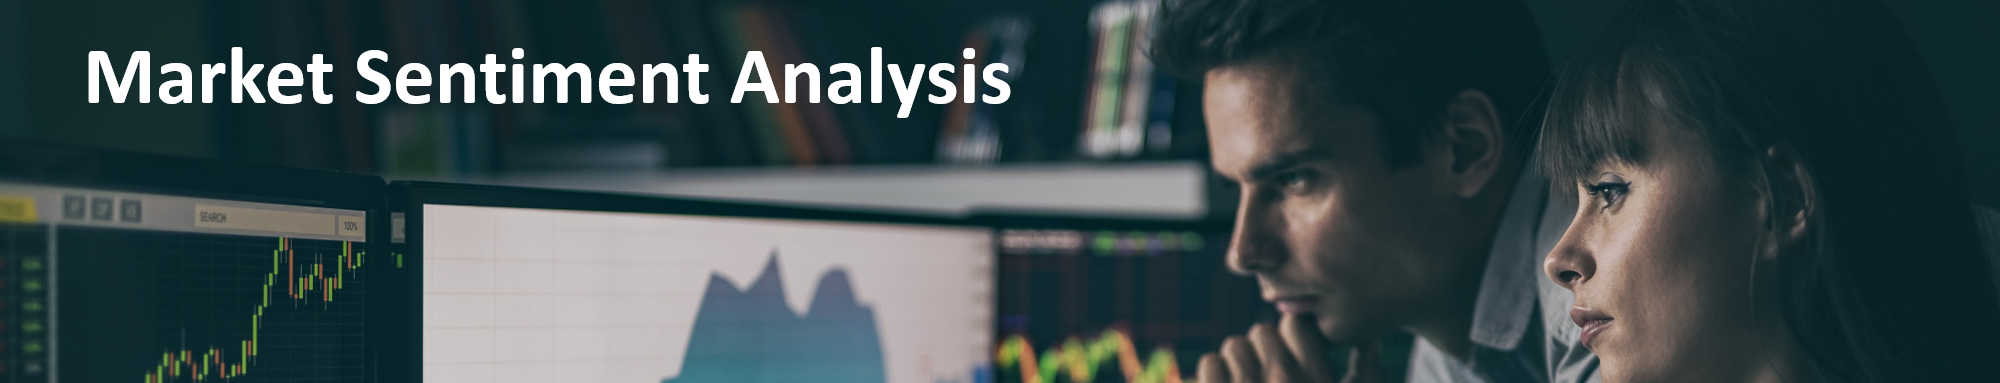 Equity Sentiment Analysis